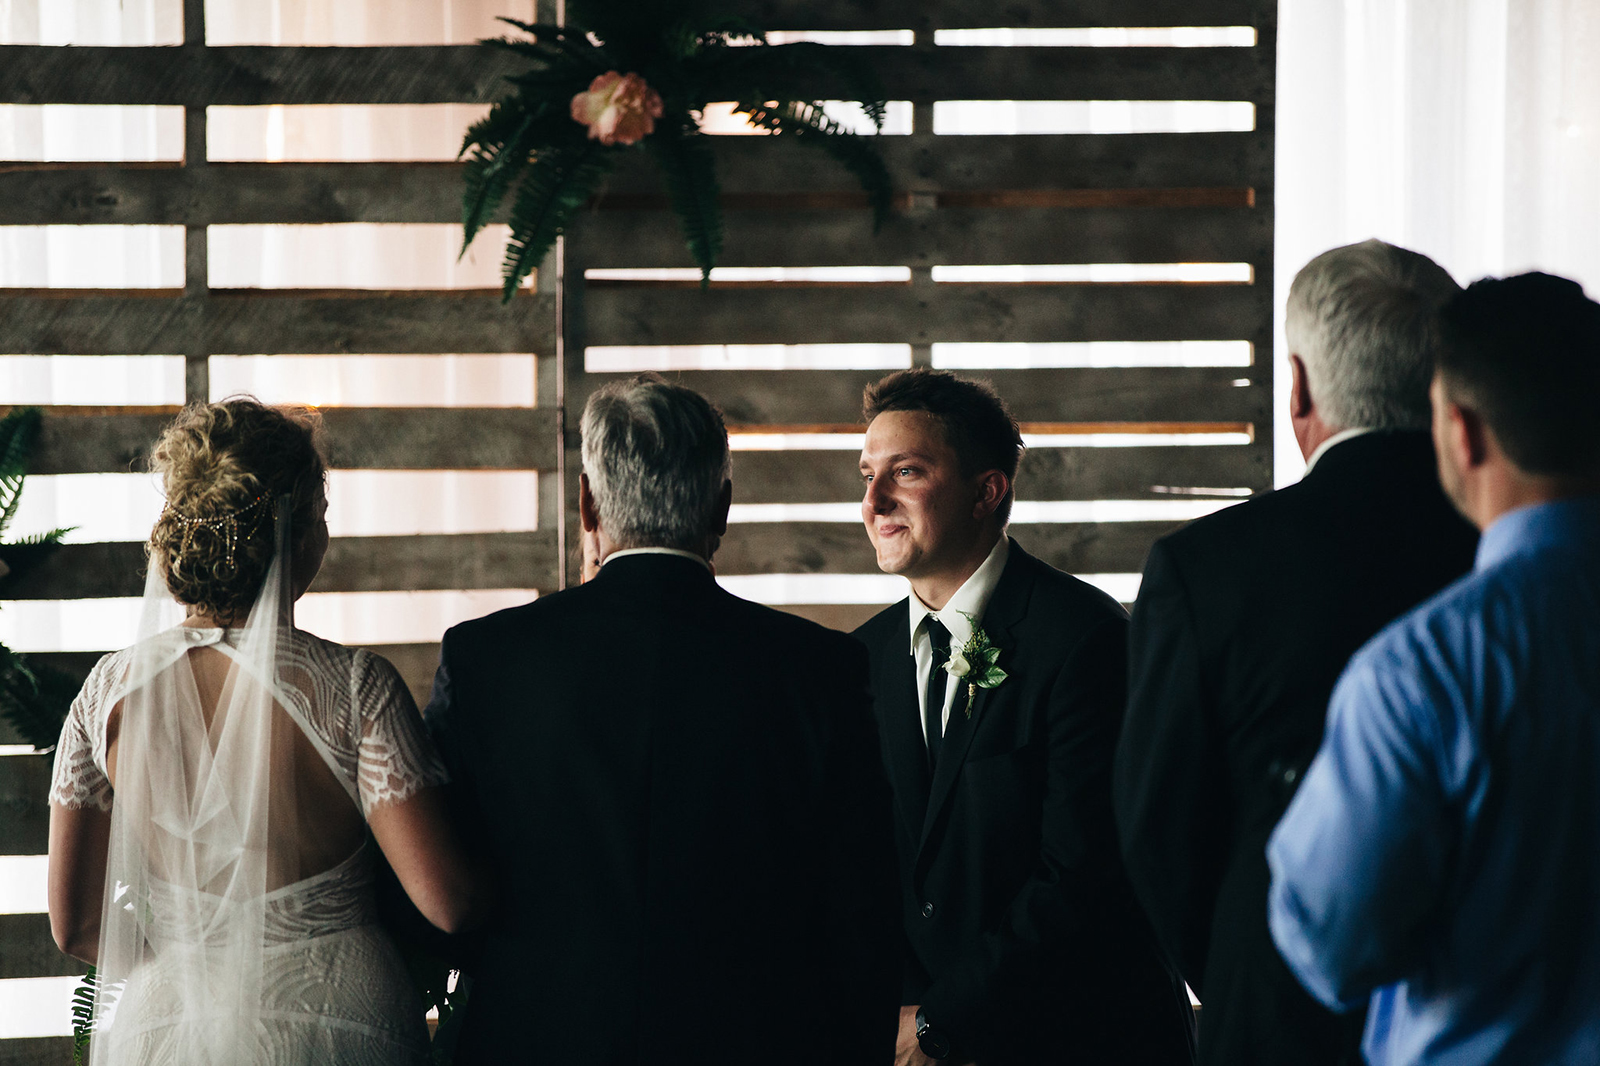 Bride and groom see each other for the first time during their wedding ceremony in Toledo, Ohio.